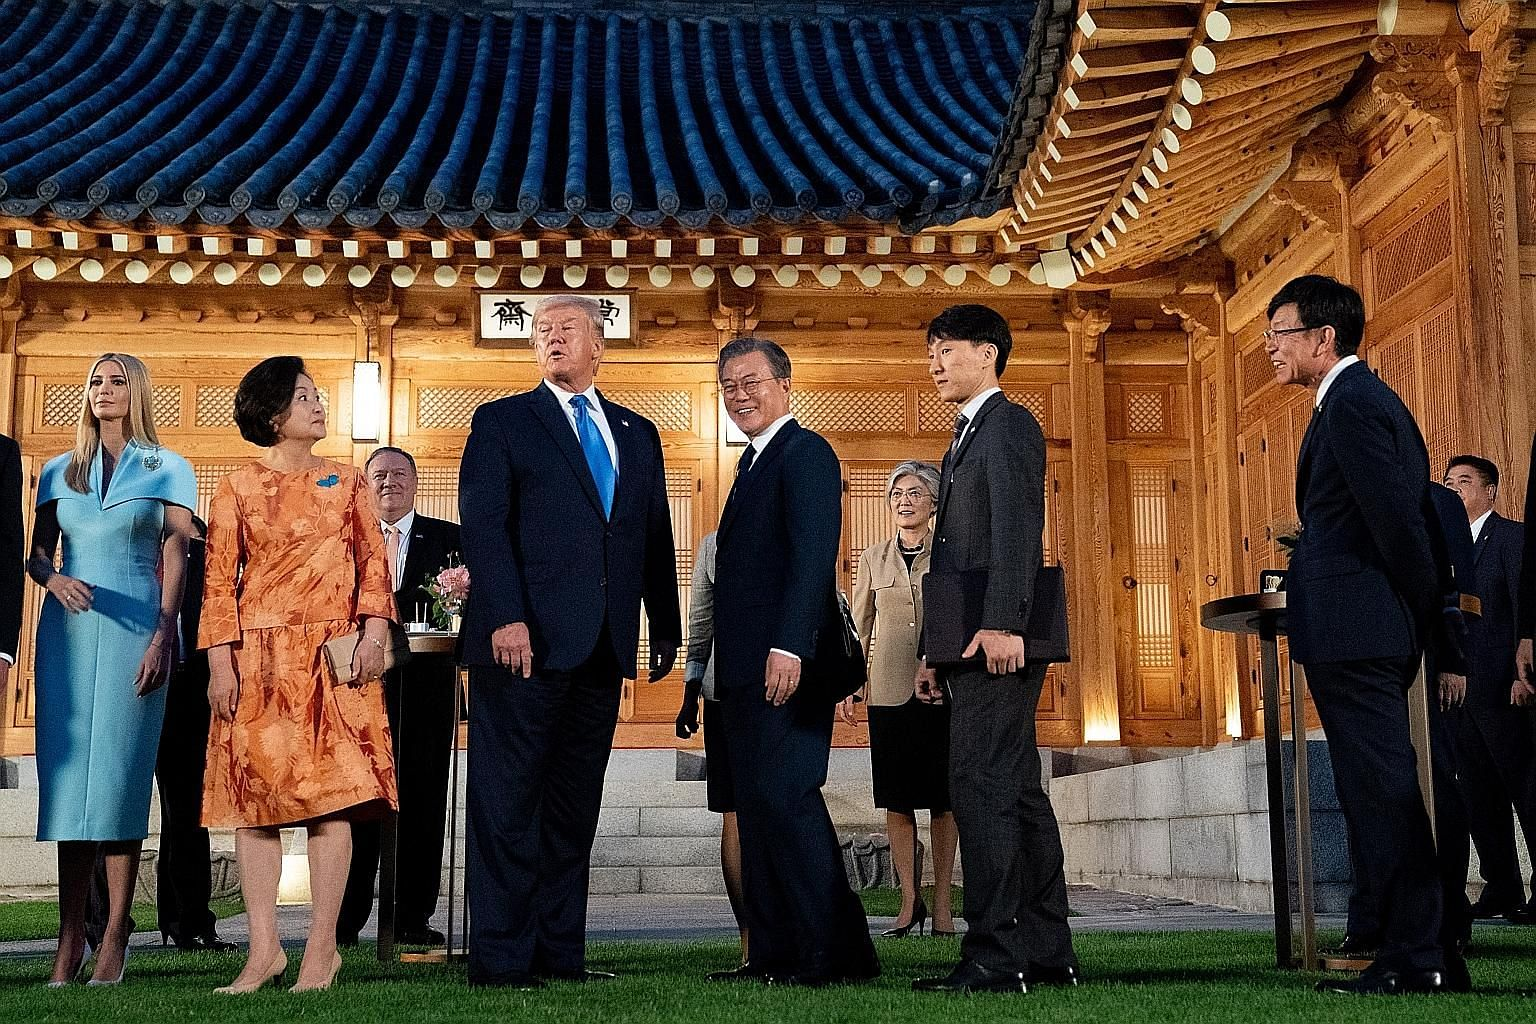 United States President Donald Trump and South Korean President Moon Jae-in at the presidential Blue House yesterday. With them are (from left) Mr Trump's daughter Ivanka, South Korean First Lady Kim Jung-sook and US Secretary of State Mike Pompeo.